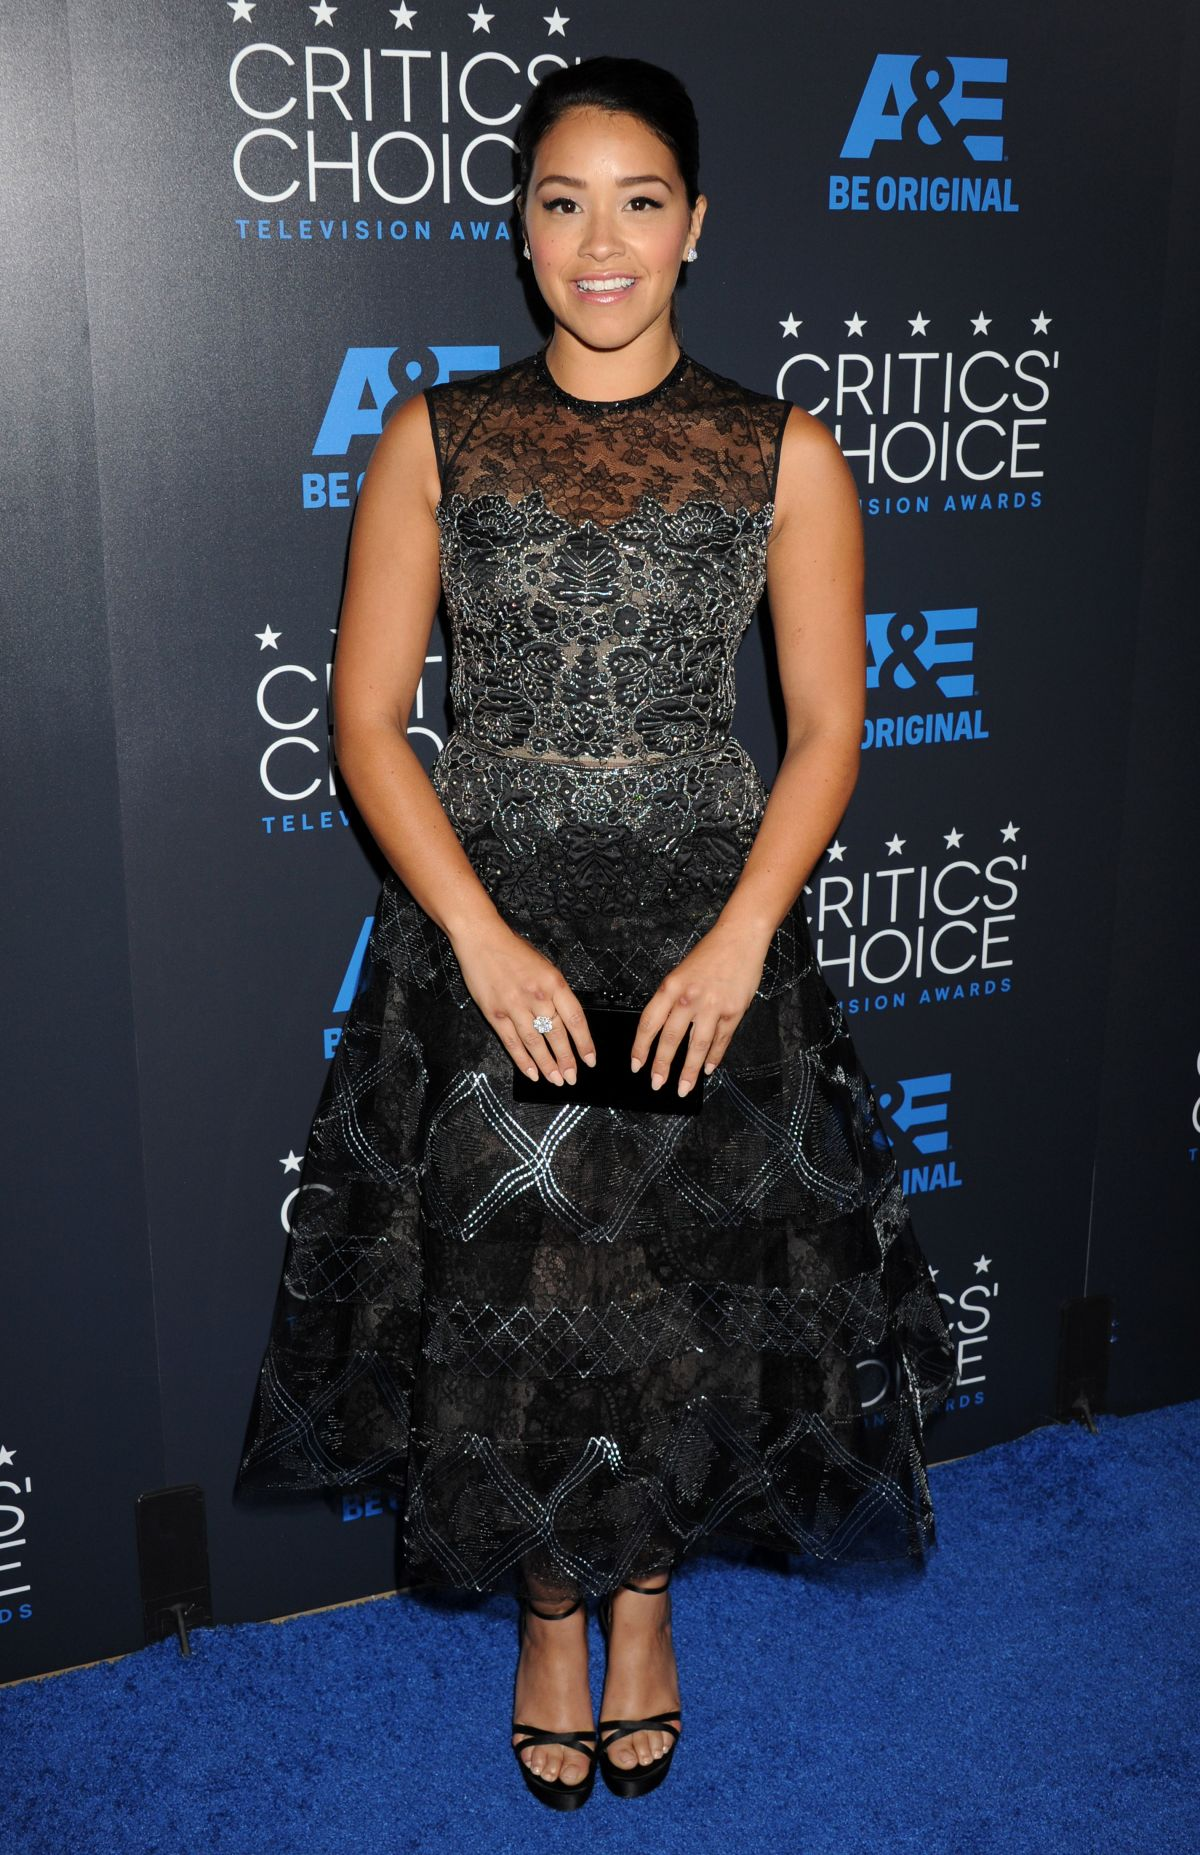 gina-rodriguez-at-5th-annual-critics-choice-television-awards-in-beverly-hills_1